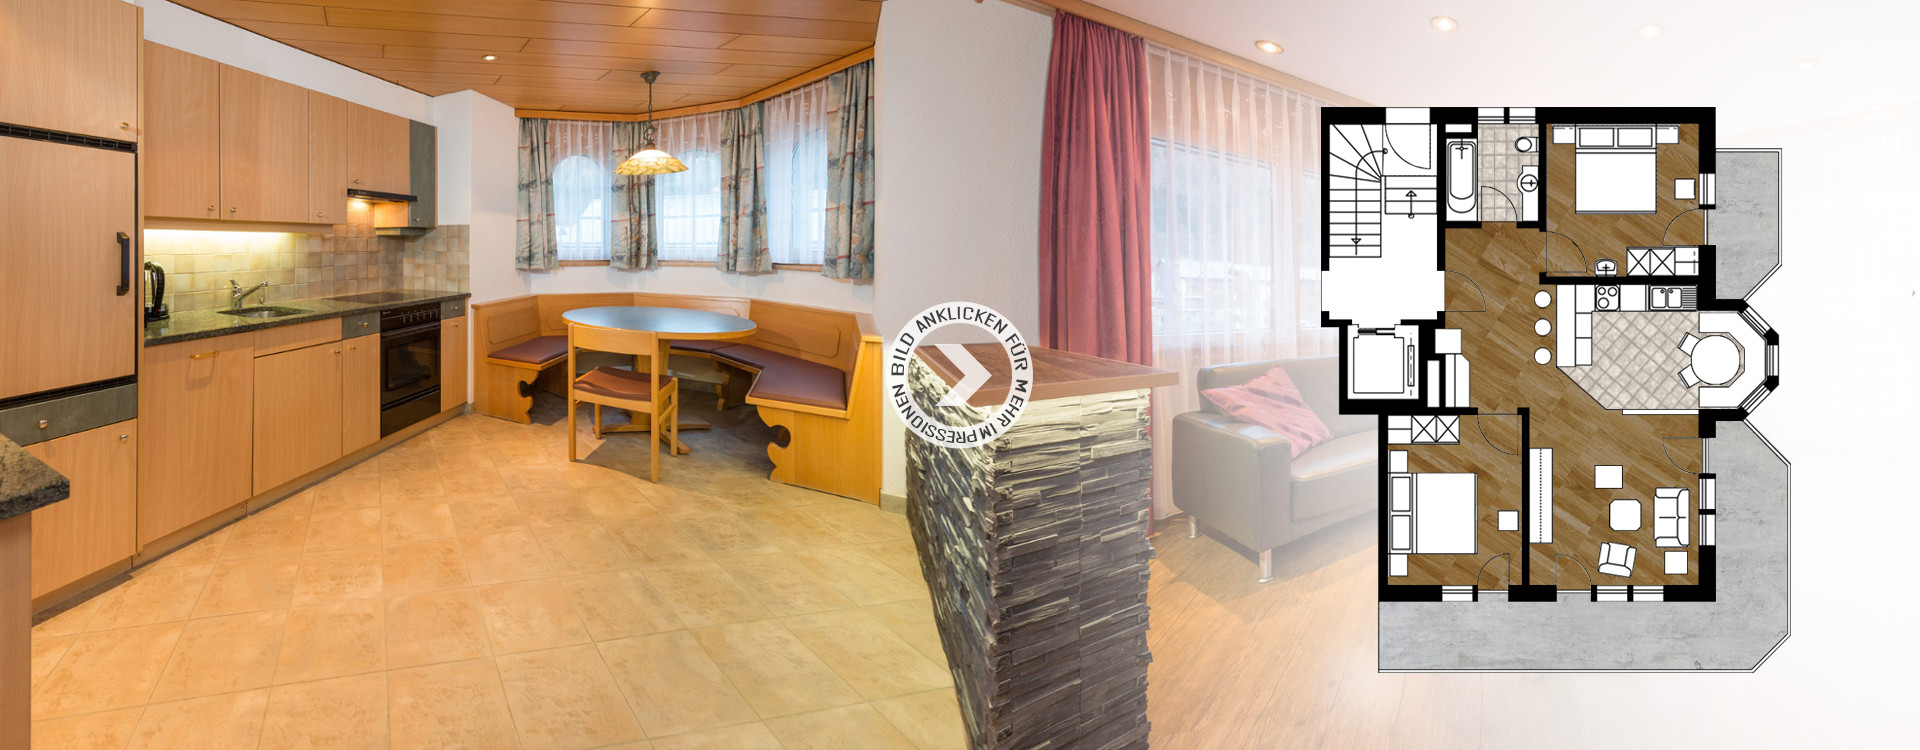 3 room apartment helvetia apartments saas-fee